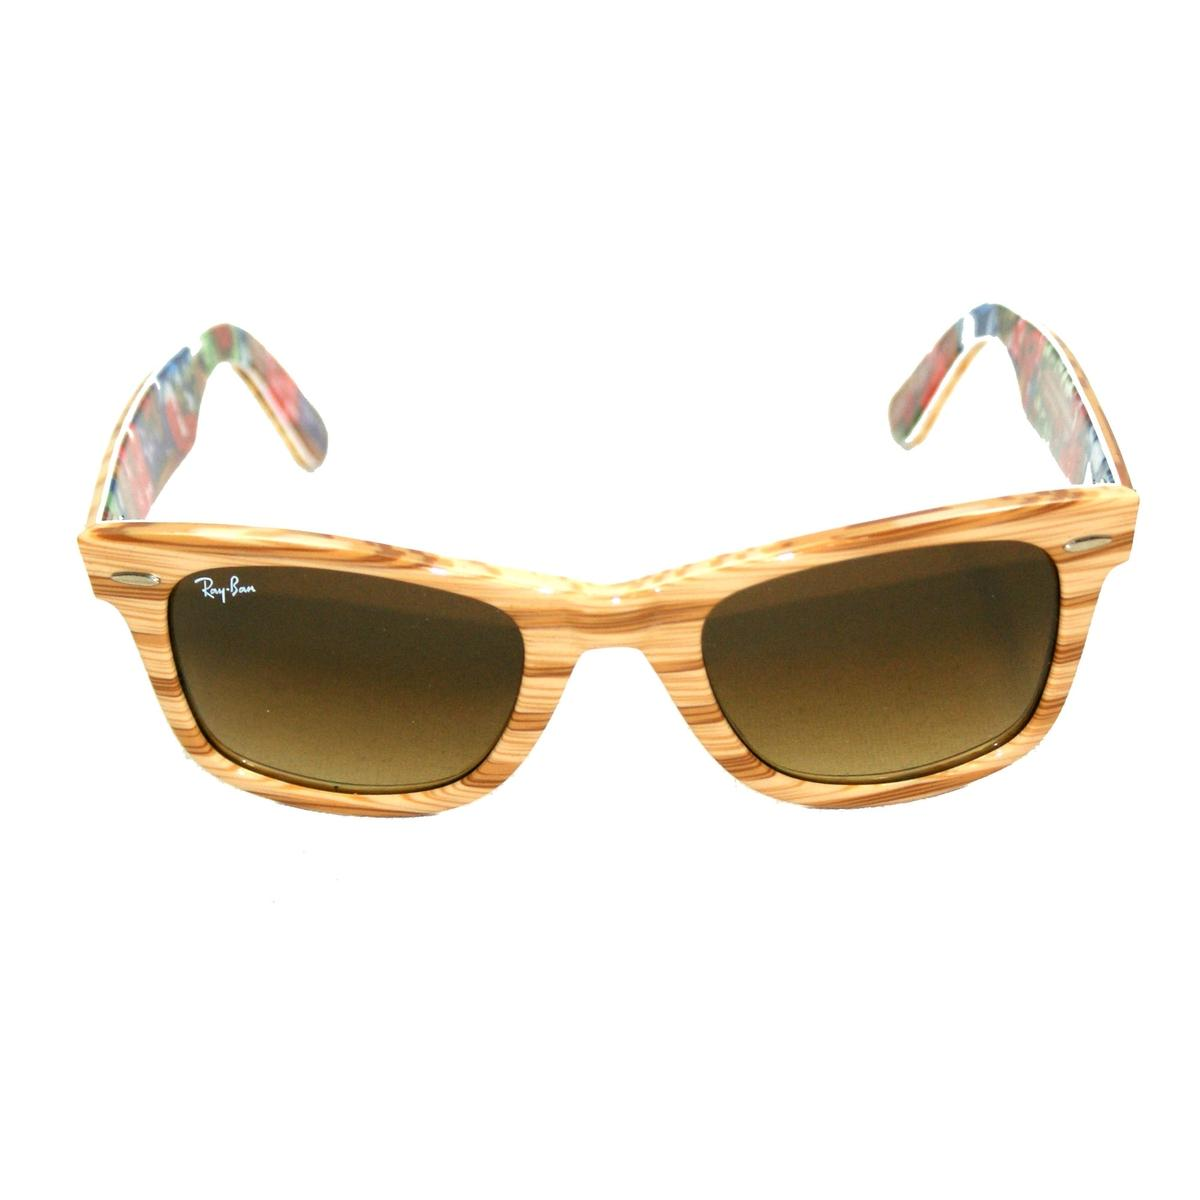 ray ban original wayfarer wood effect sunglasses